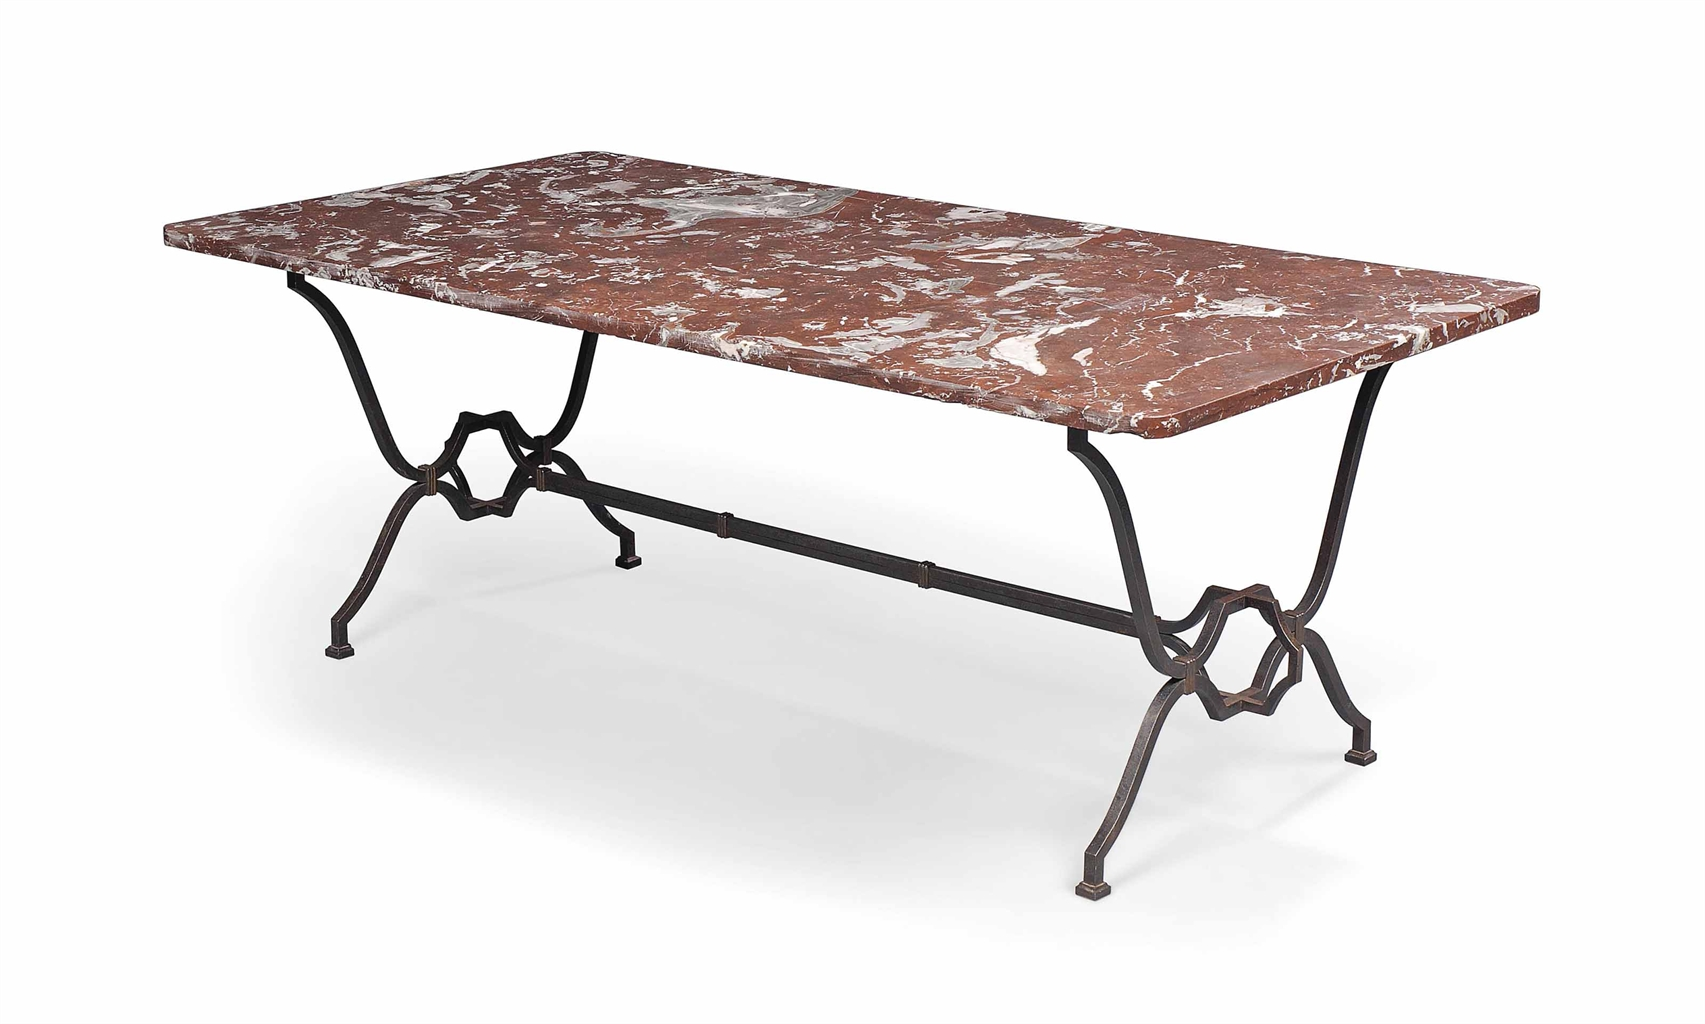 A FRENCH WROUGHT IRON AND MARBLE DINING TABLE MID 20TH  : d5680136a from www.christies.com size 1705 x 1024 jpeg 420kB